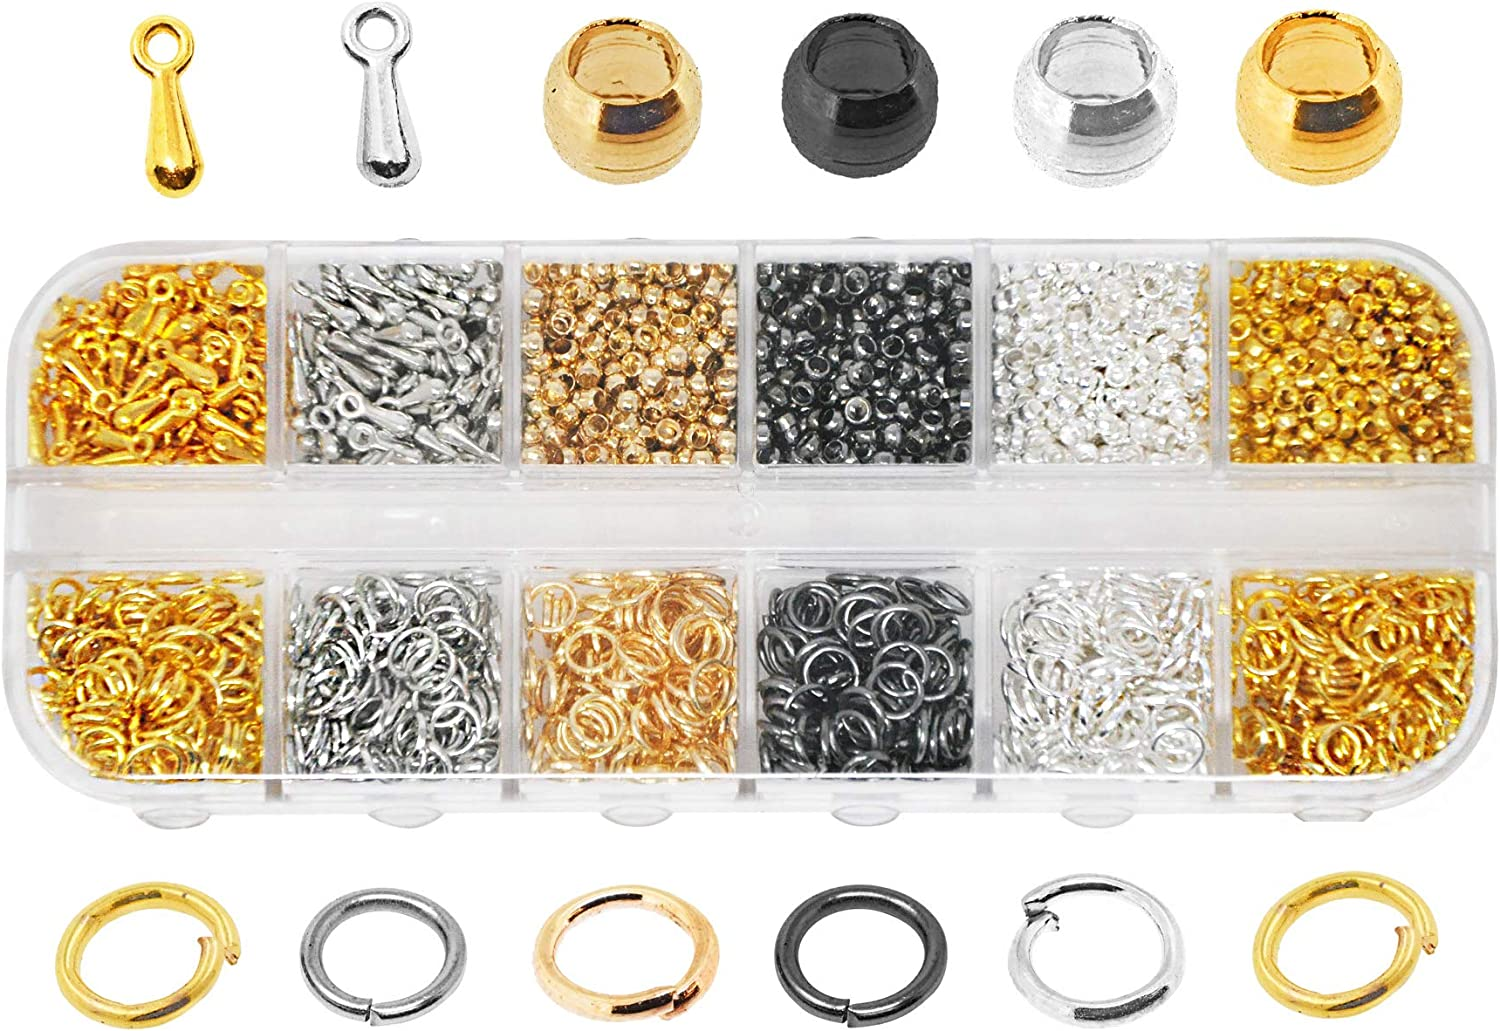 500 Pcs Metal Crimps Stopper Beads Bronze Gold Black Plated Silver